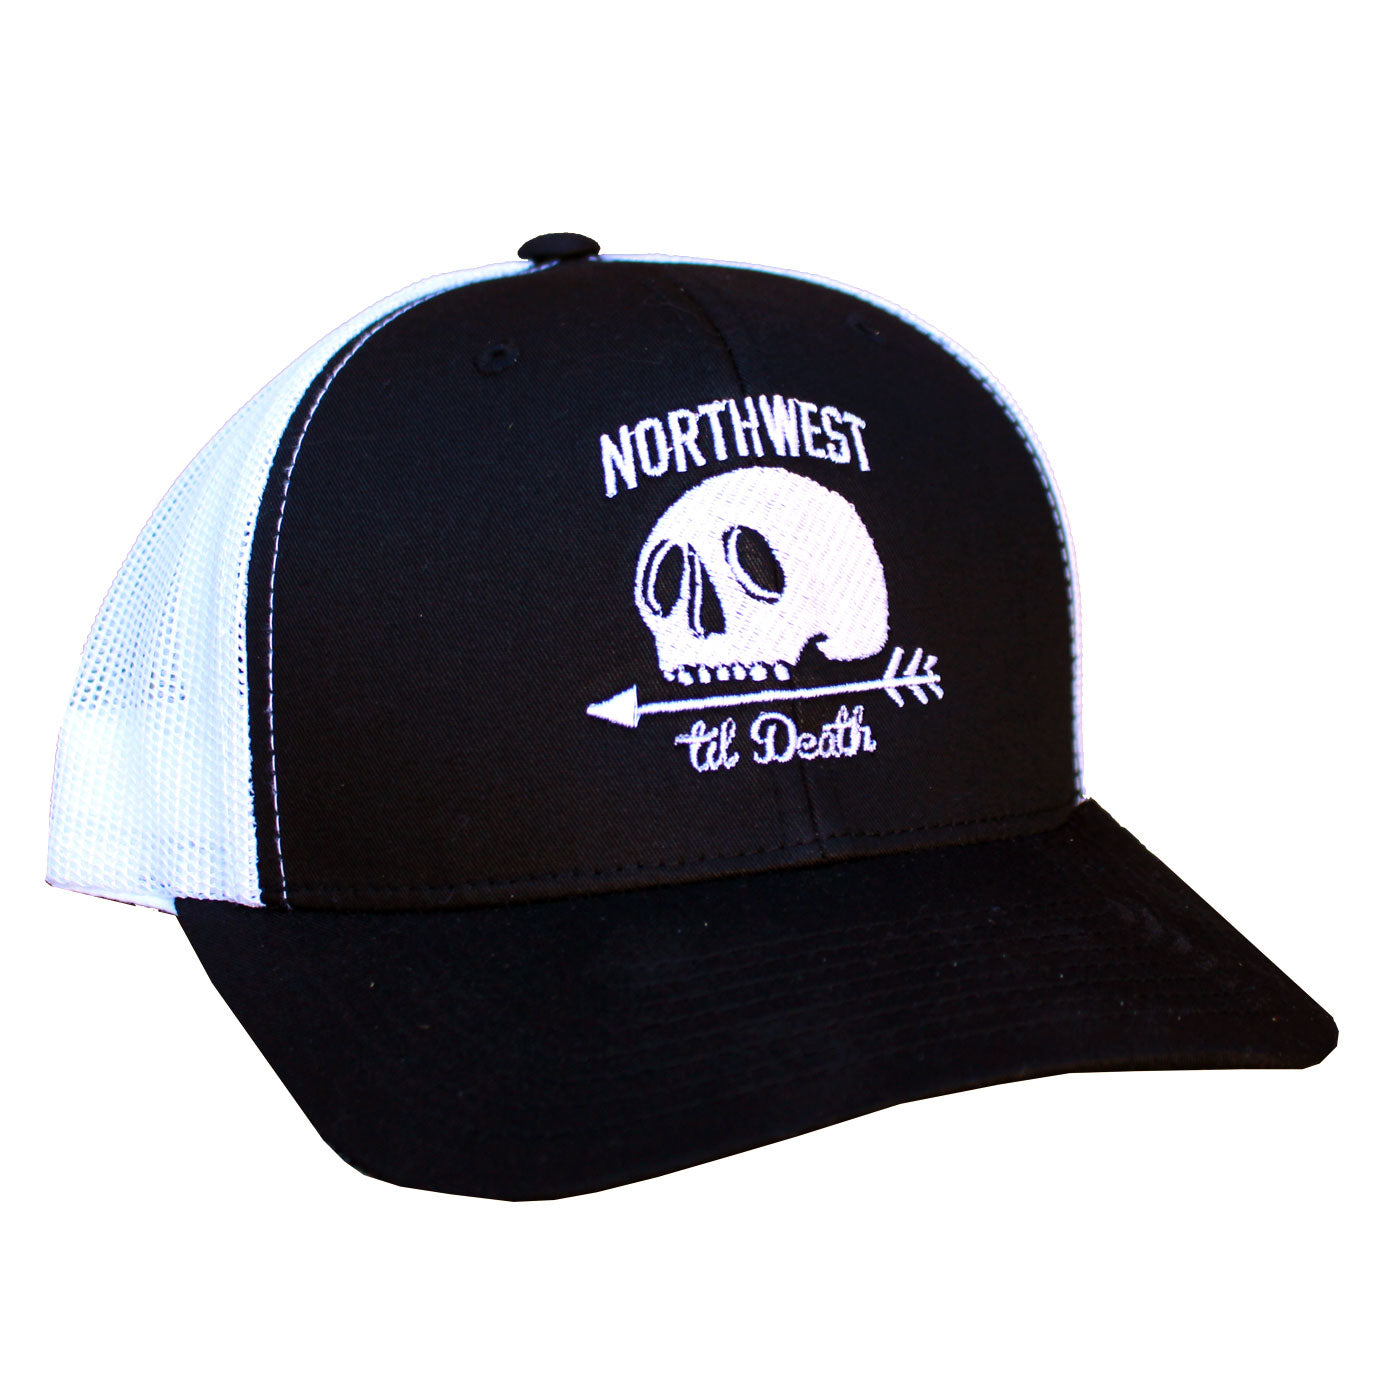 Standard Issue Trucker Hat - Black/White